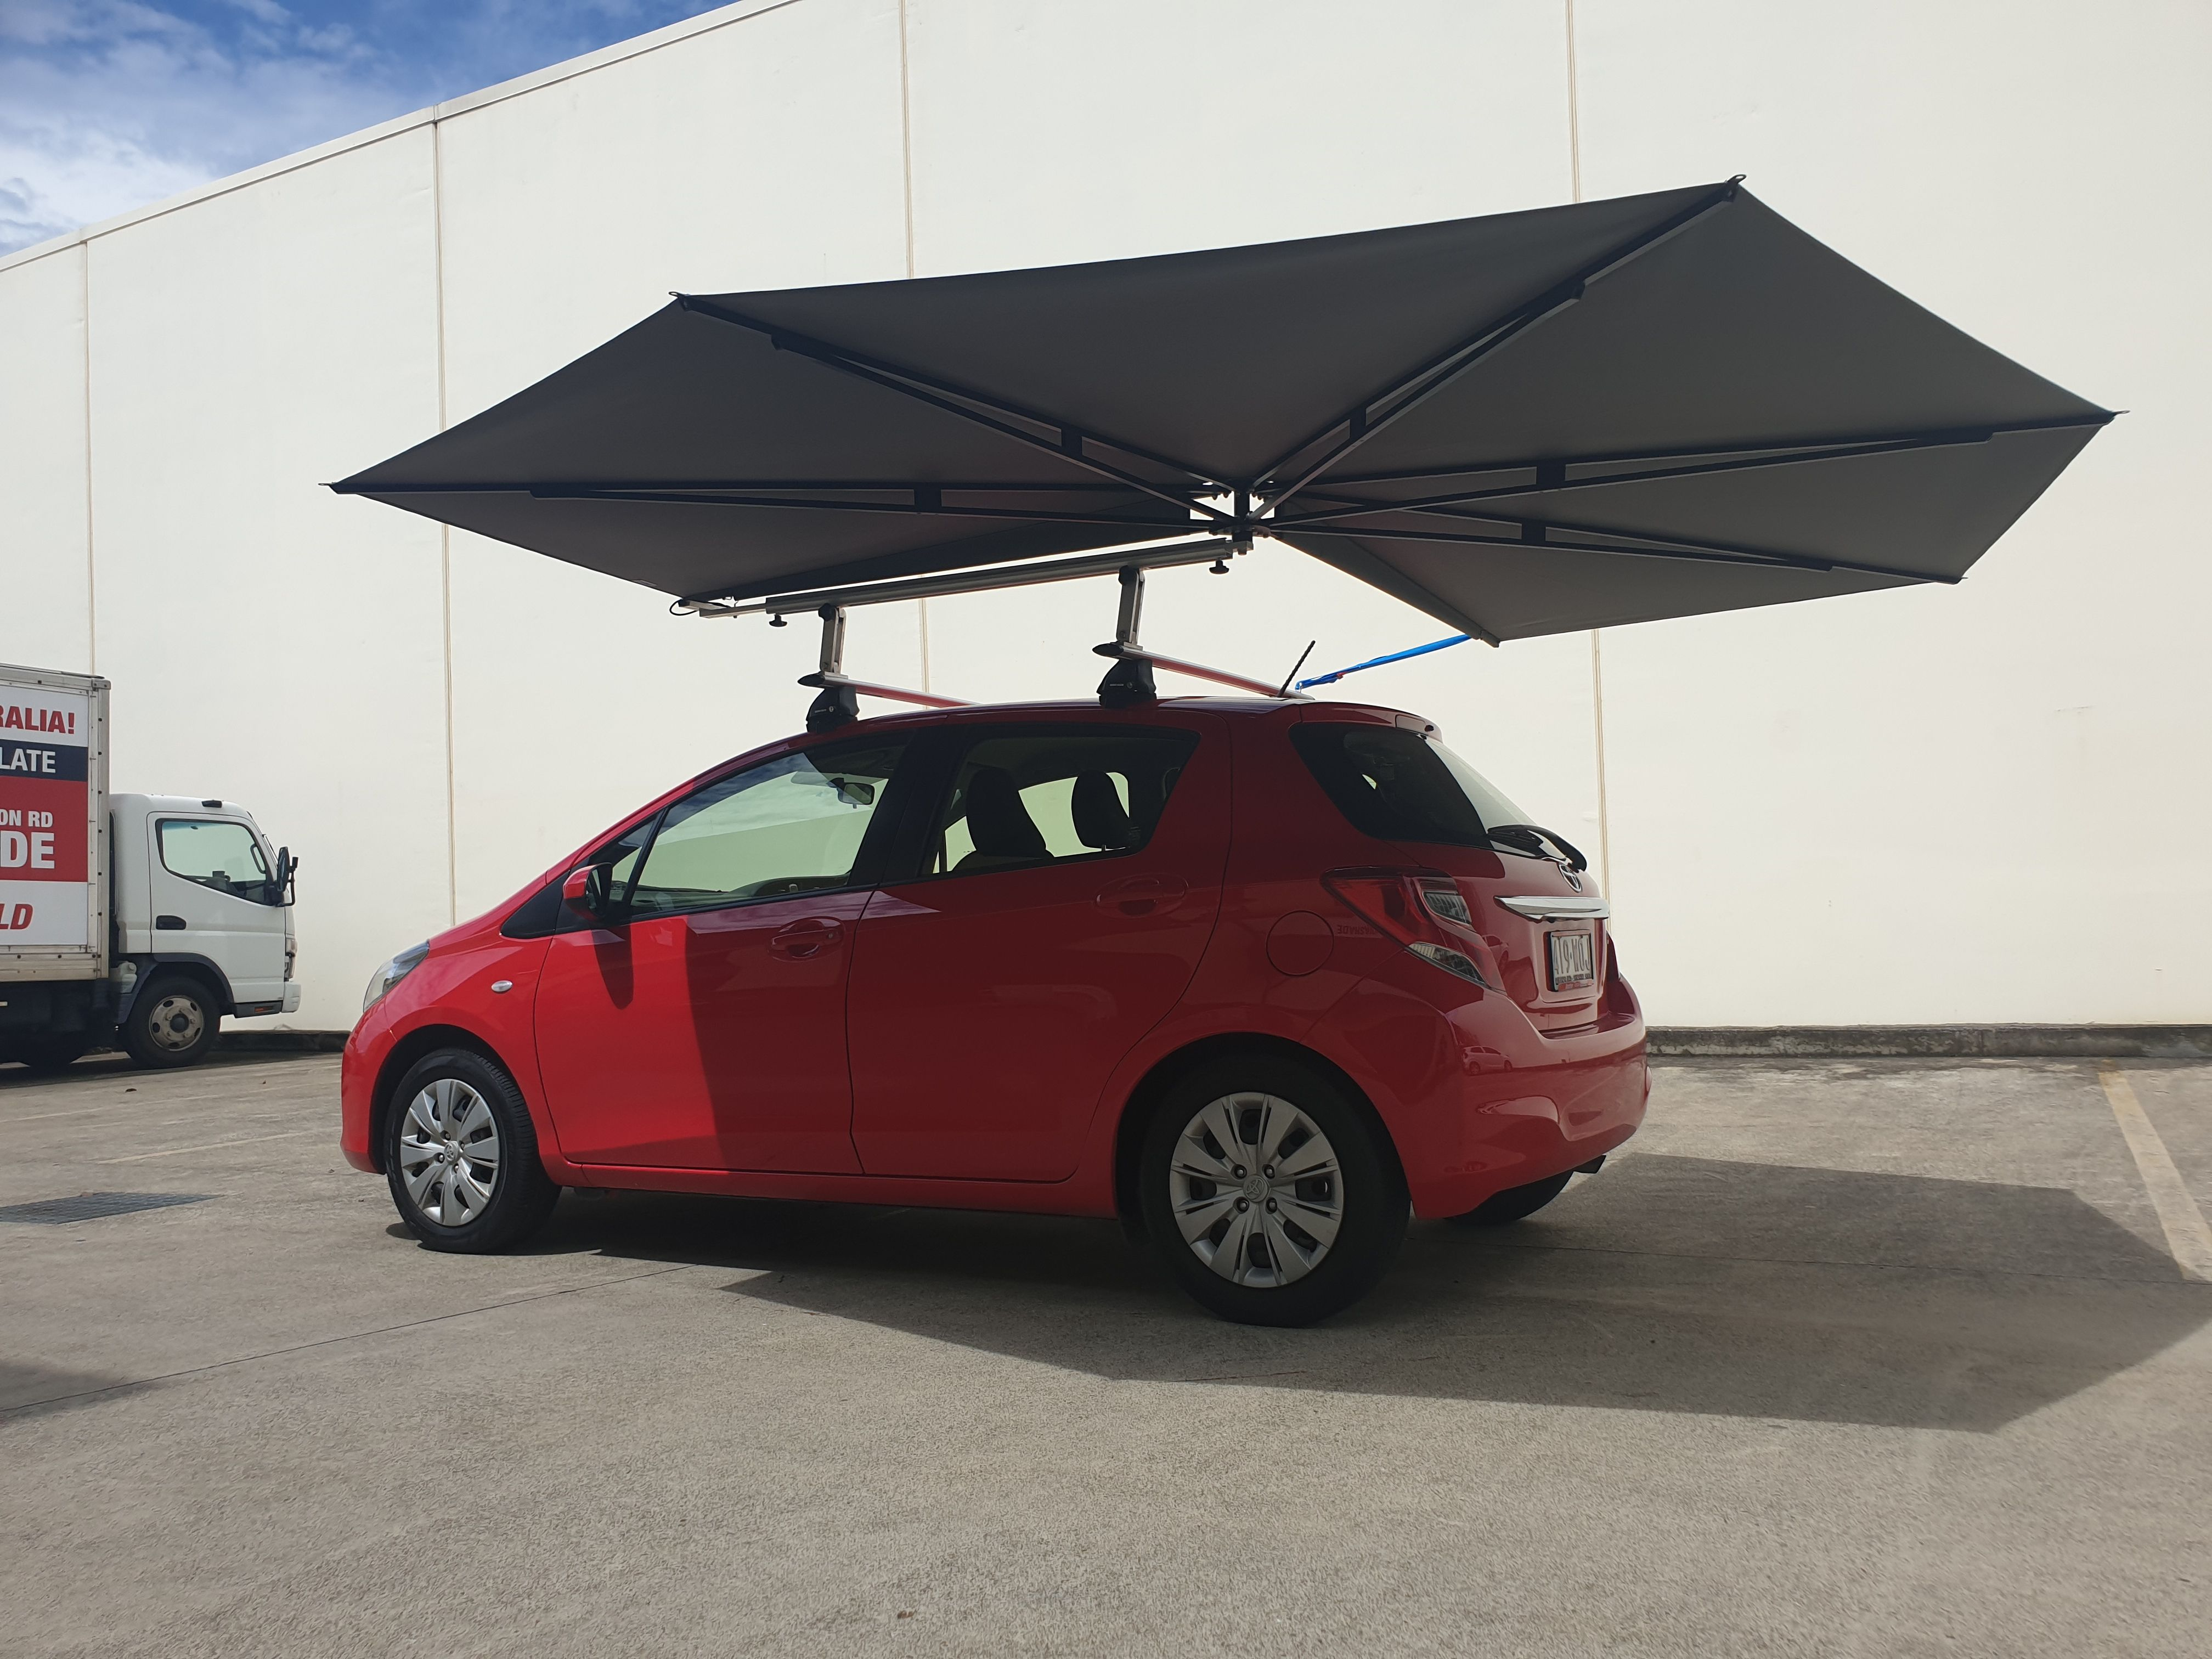 Pin On Roof Tent